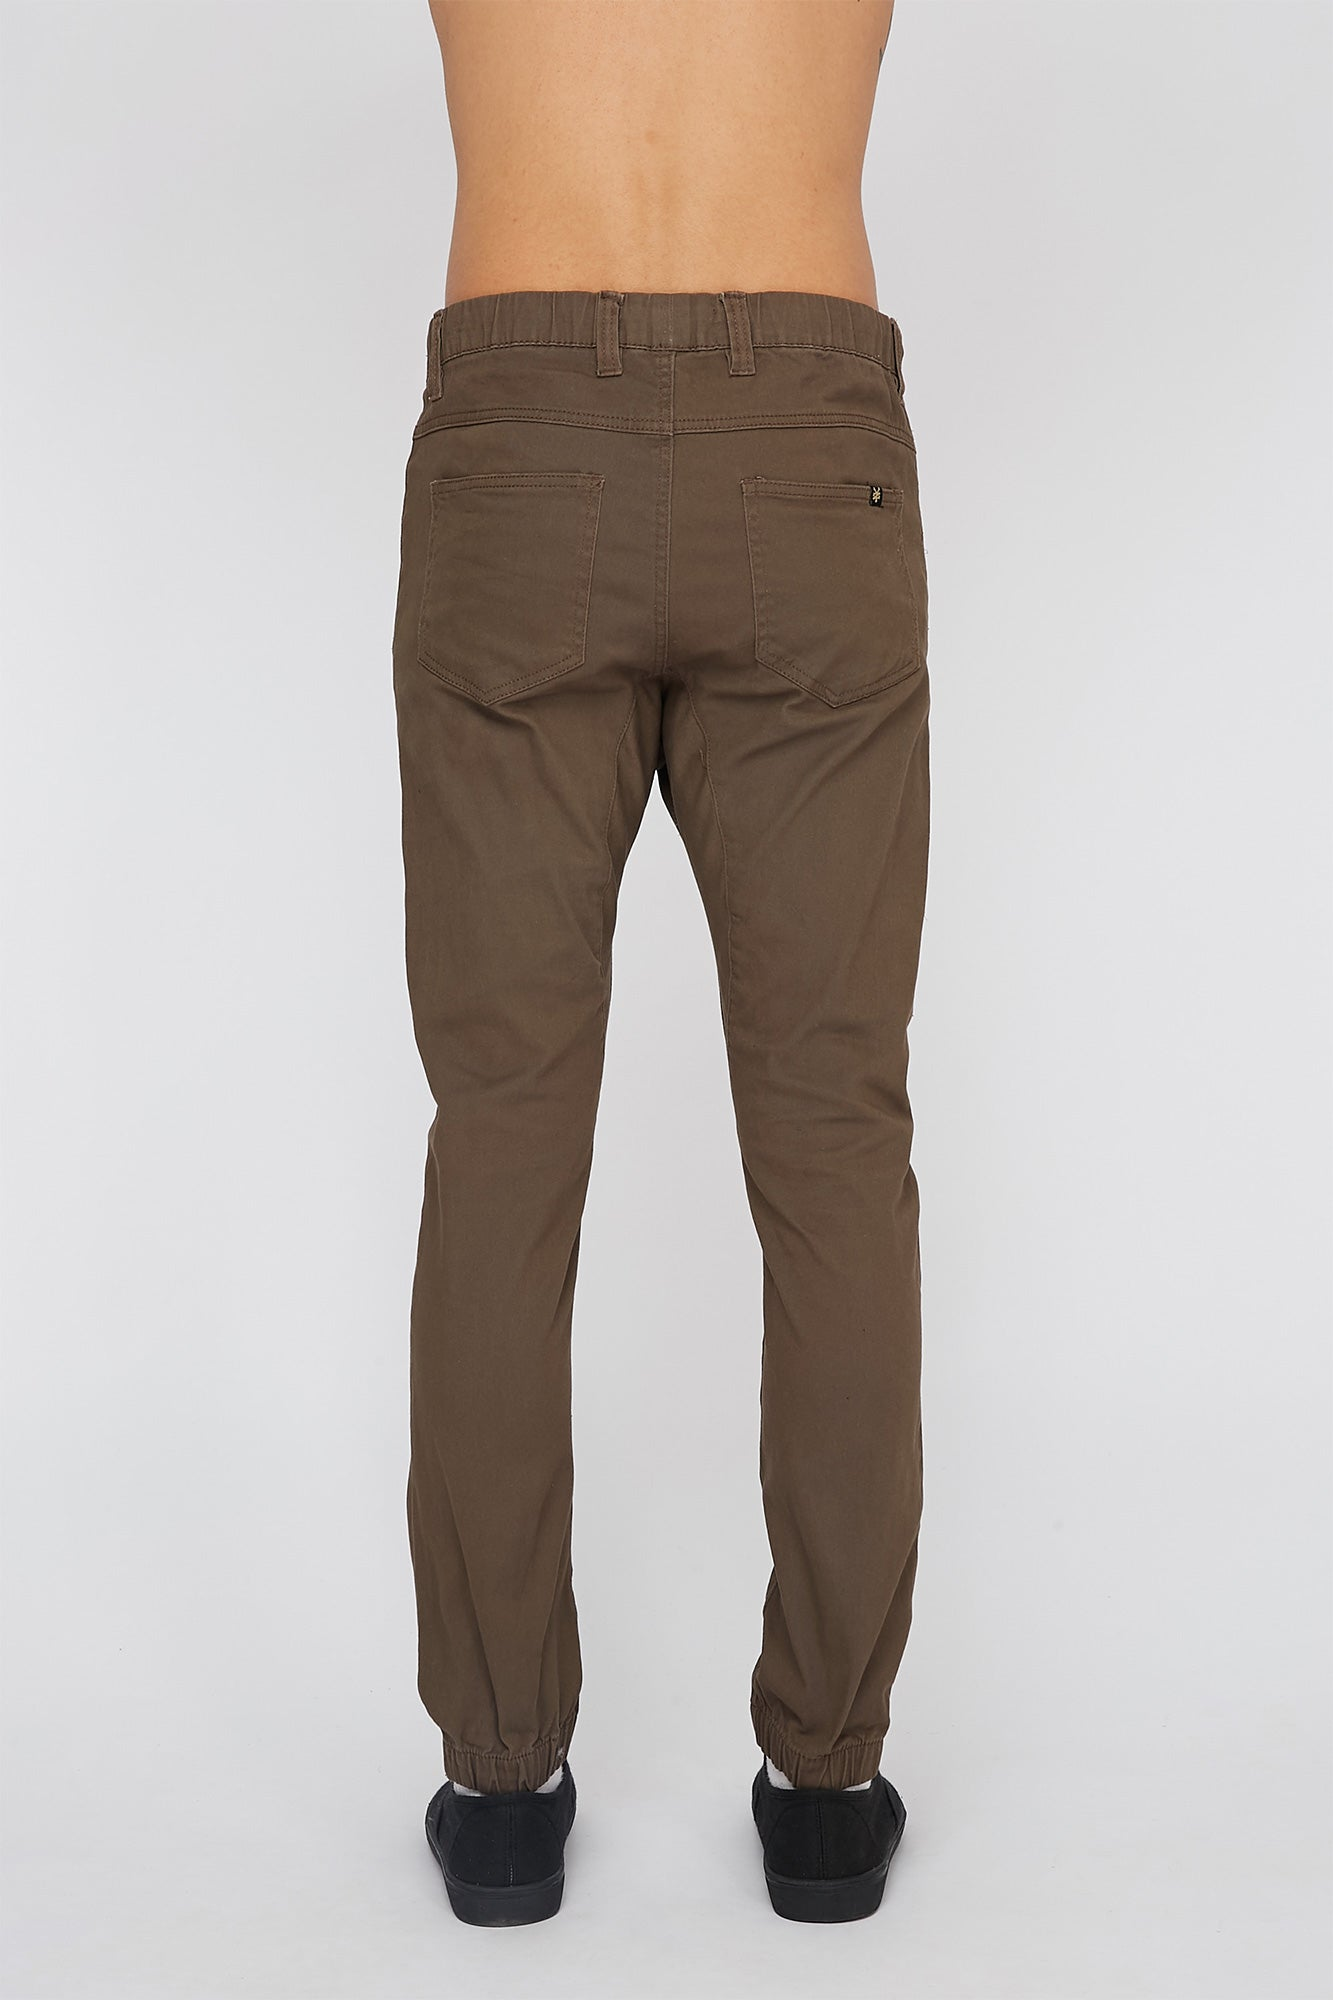 Zoo York Mens 5-Pocket Jogger